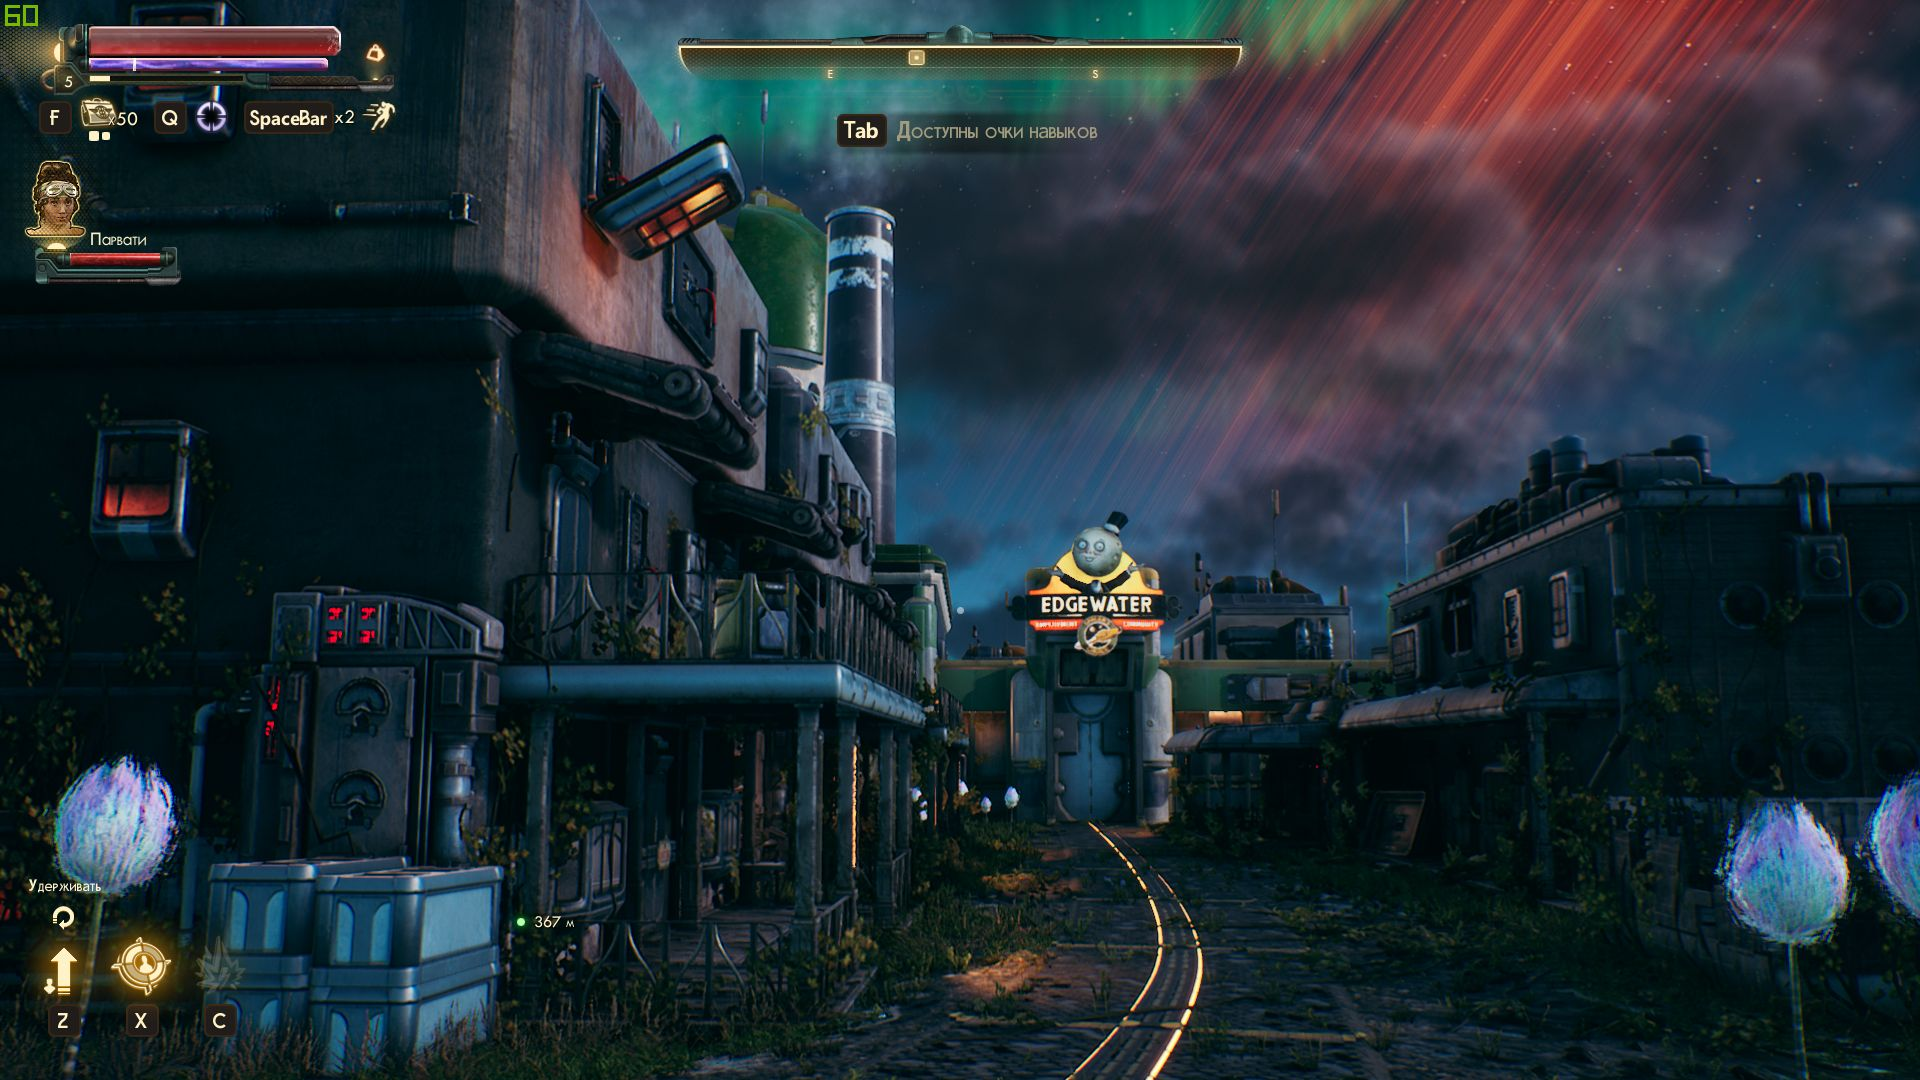 00077.Jpg - Outer Worlds, the